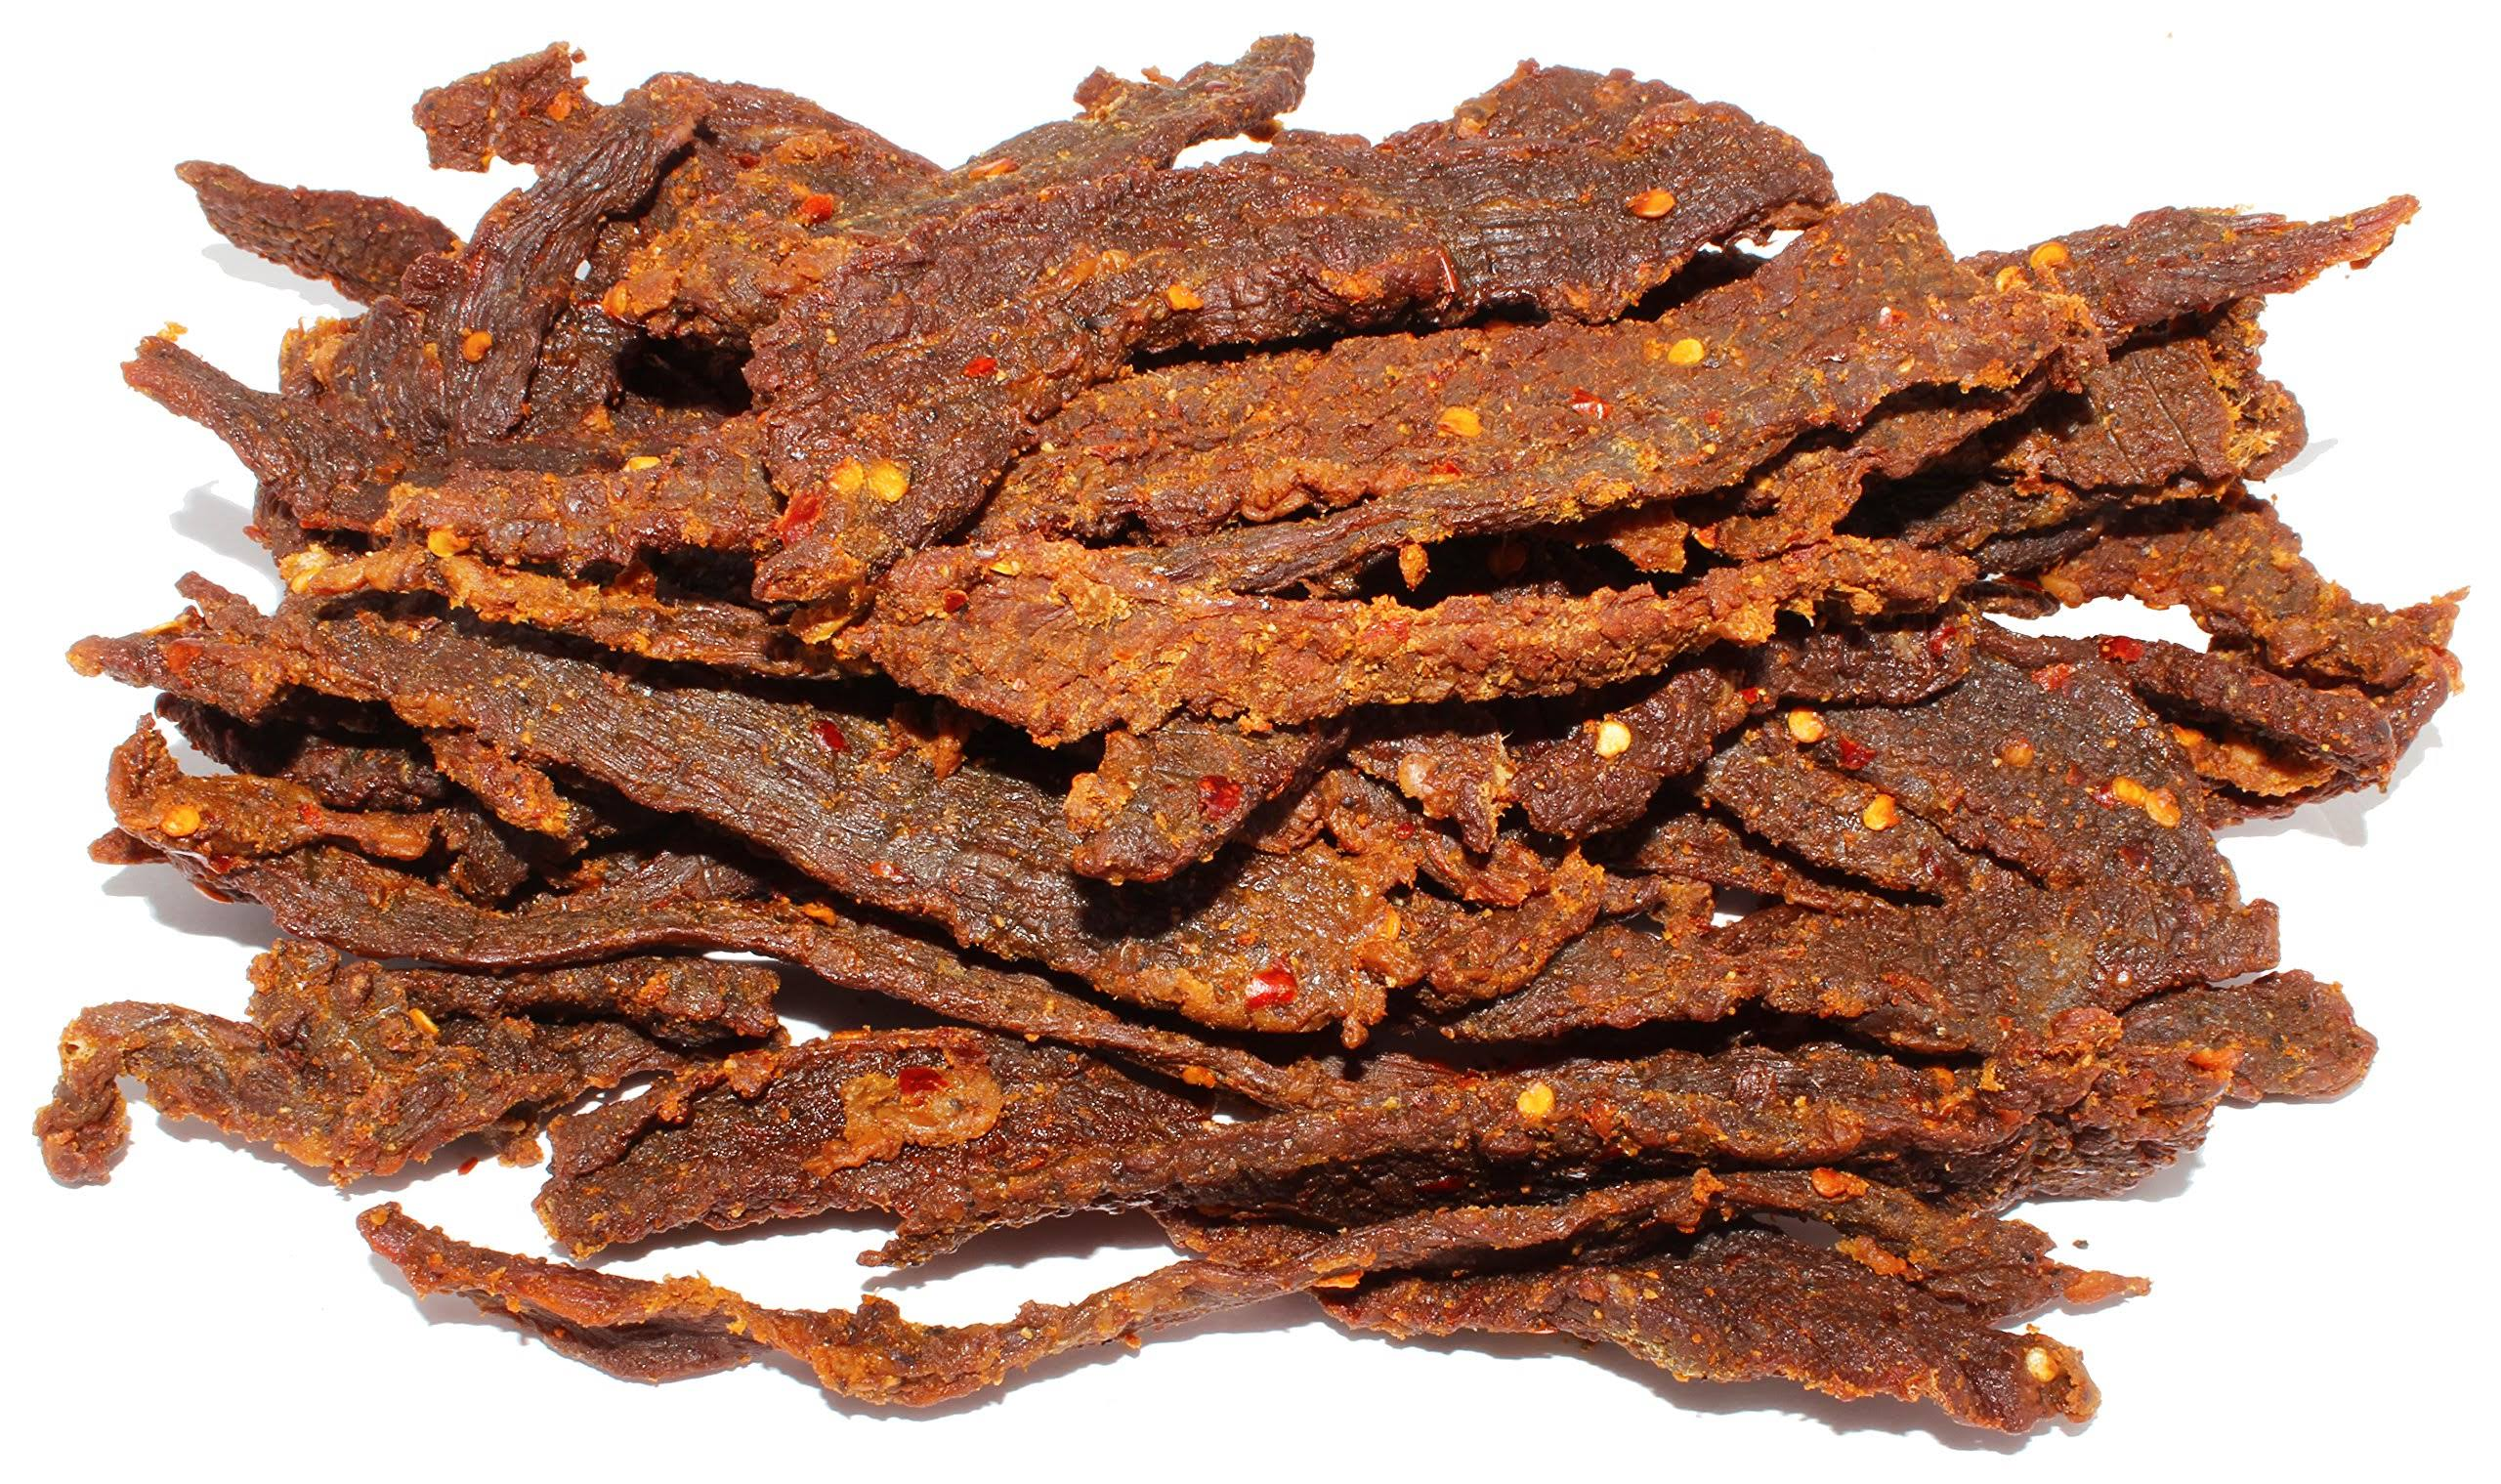 People's Choice Beef Jerky - Carne Seca - Limn Con Chile - Sugar-Free, Carb-Free, Gluten-Free, Keto-Friendly Meat Snack - 1 lb Bag